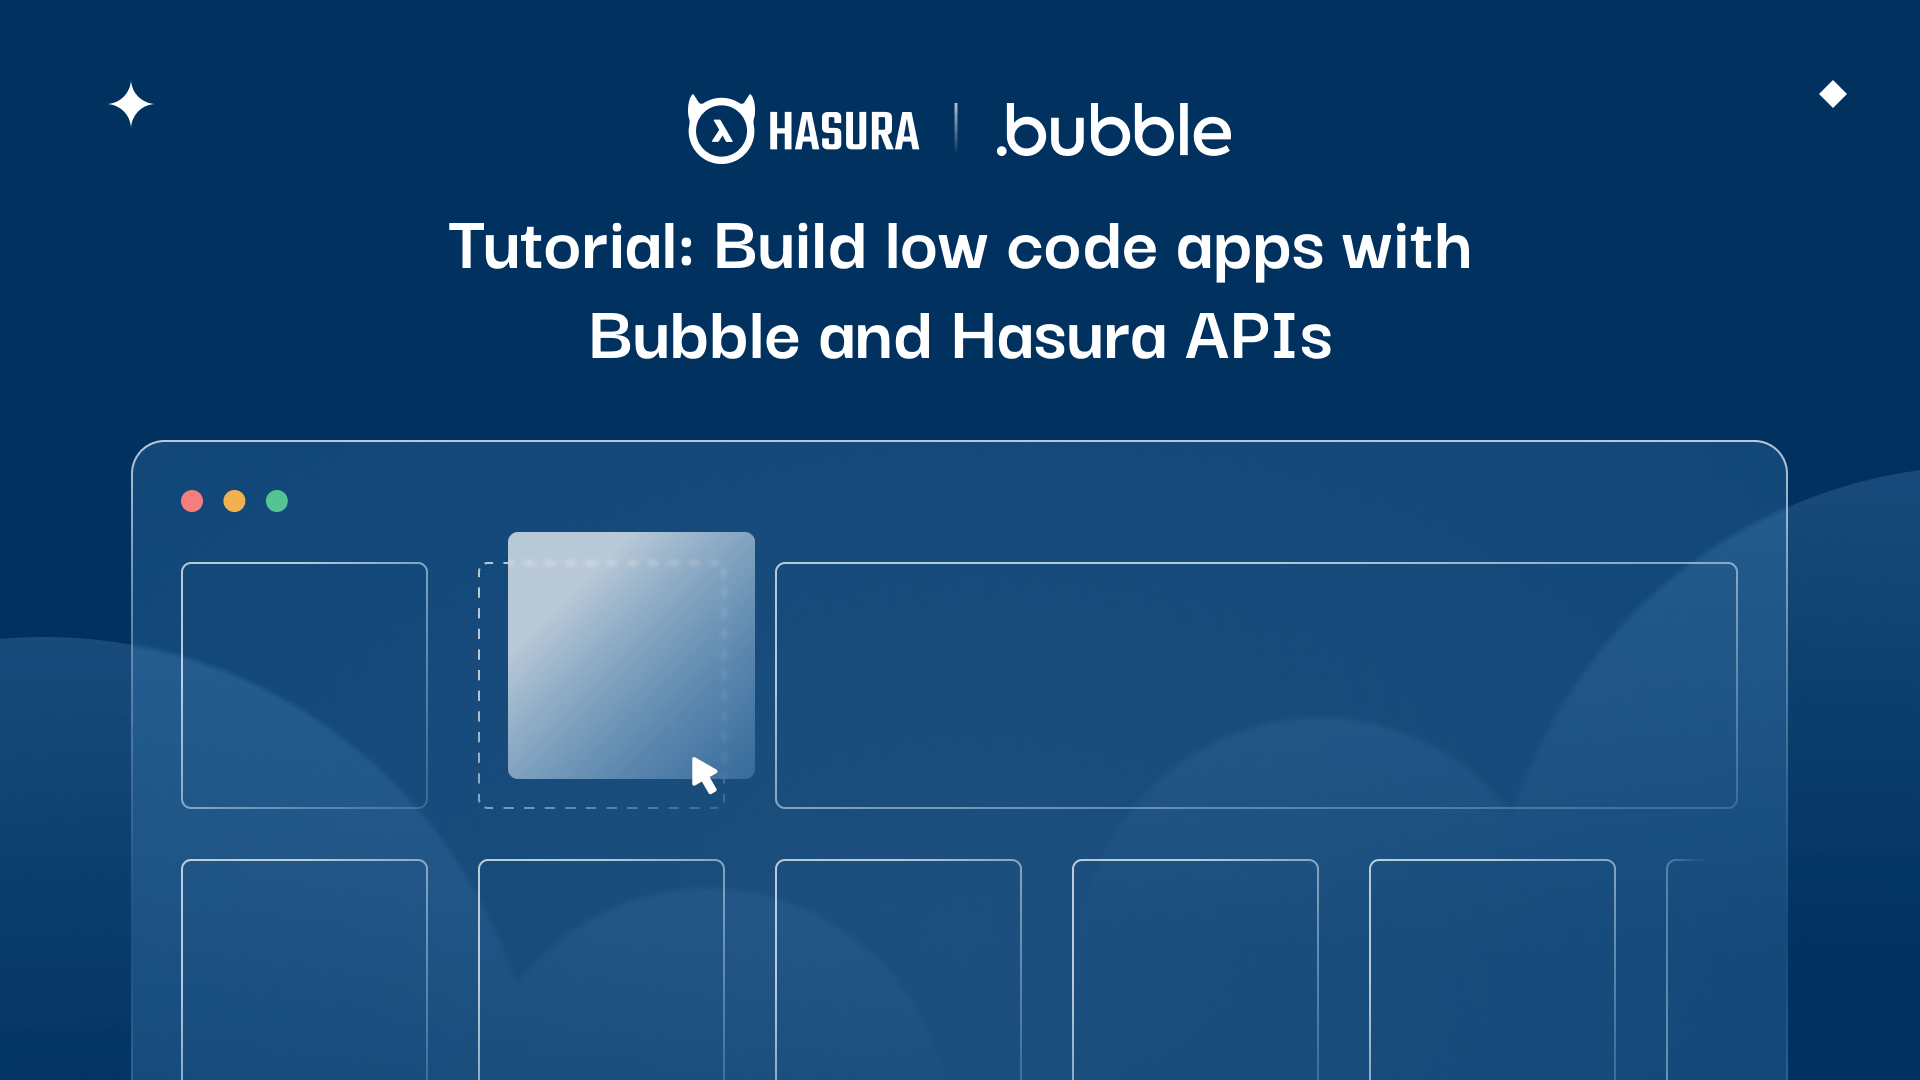 Tutorial: Build low code apps with Bubble and Hasura APIs